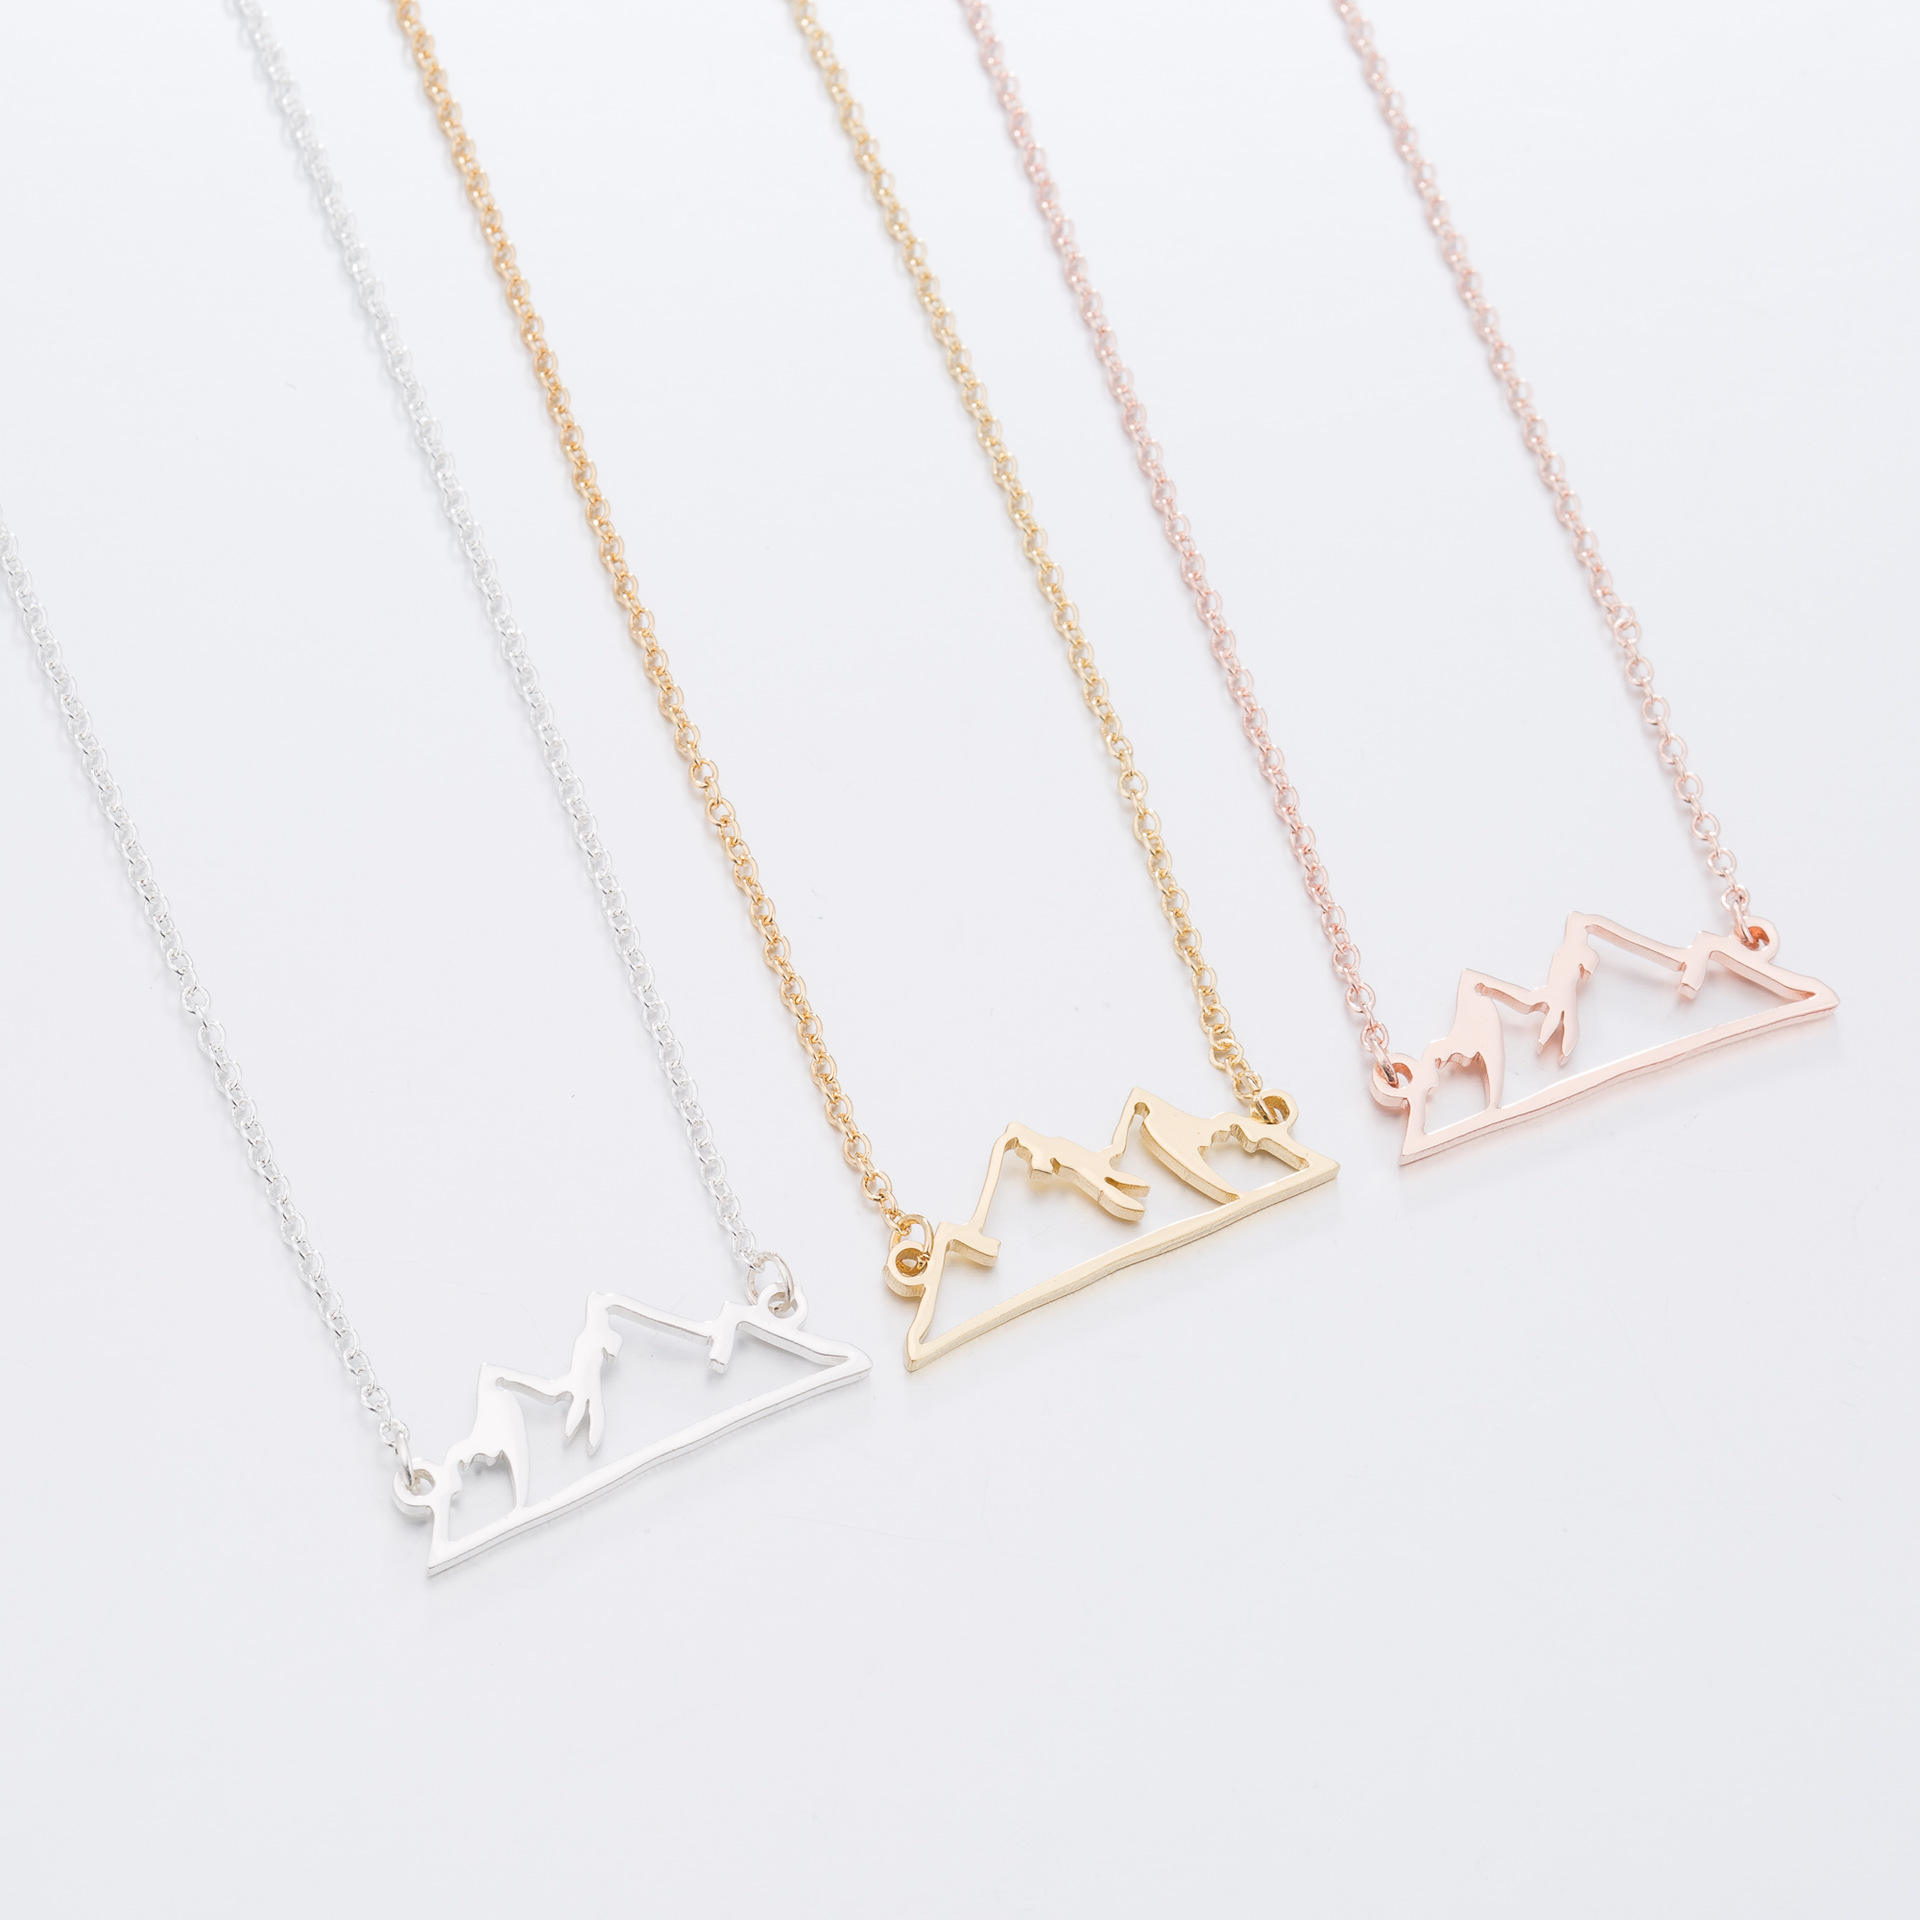 Cute Japan Origami mountains necklace Stainless steel Simple Gold mountains range landscape pendant necklace